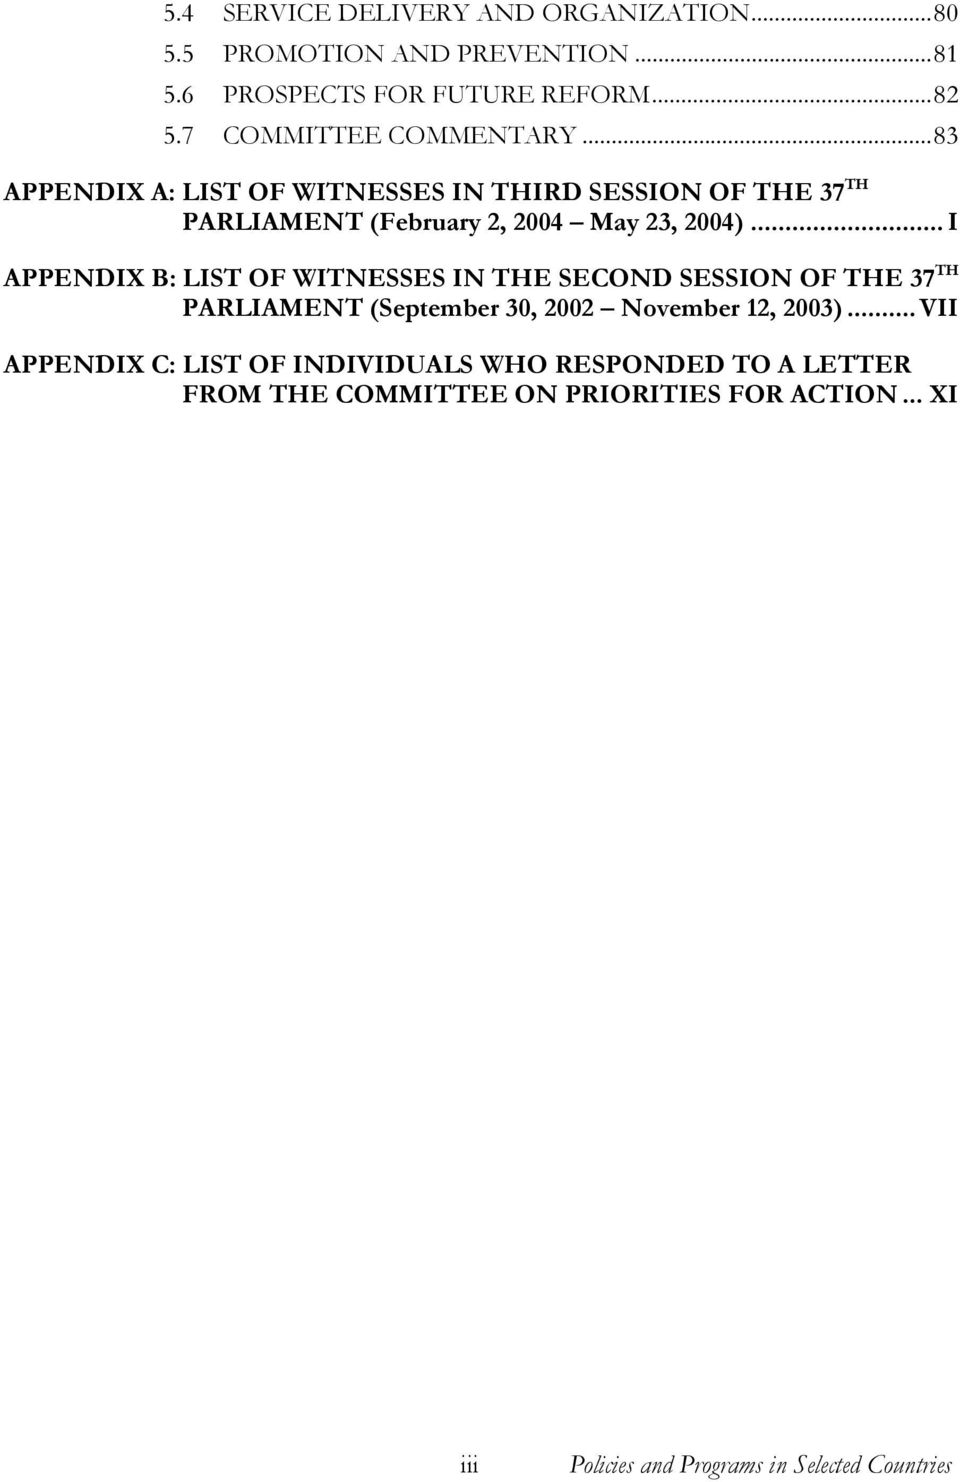 .. I APPENDIX B: LIST OF WITNESSES IN THE SECOND SESSION OF THE 37 TH PARLIAMENT (September 30, 2002 November 12, 2003).